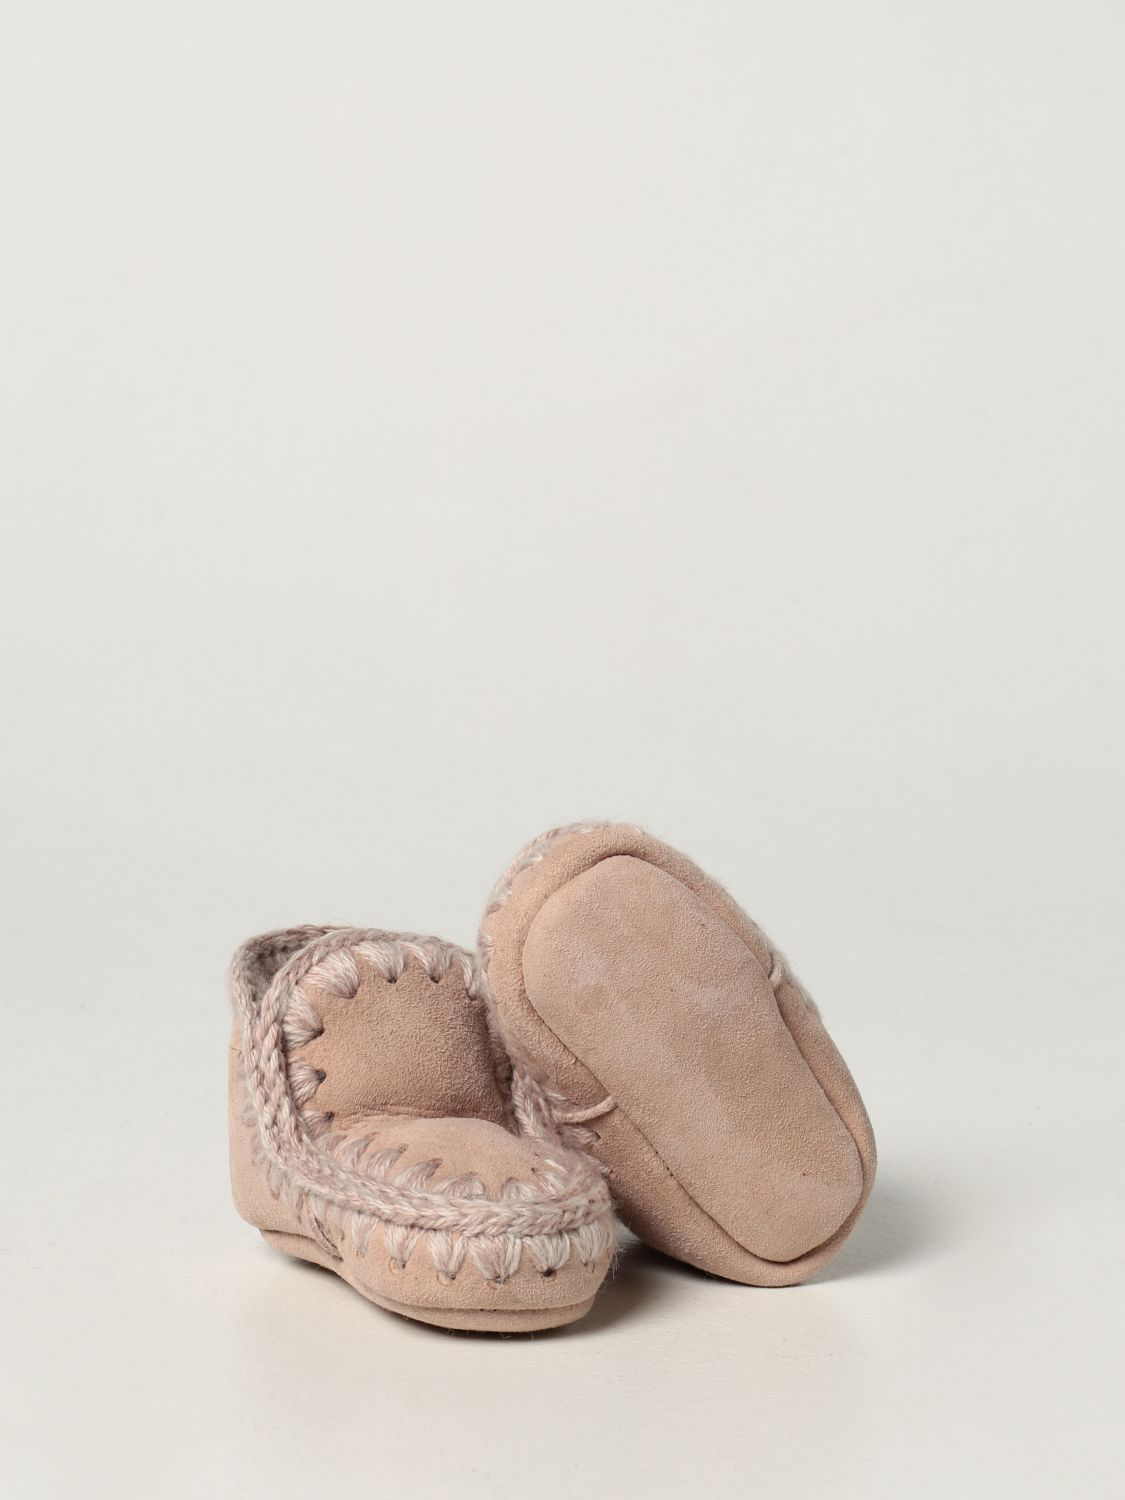 Chaussures Mou: Chaussures enfant Mou beige 2